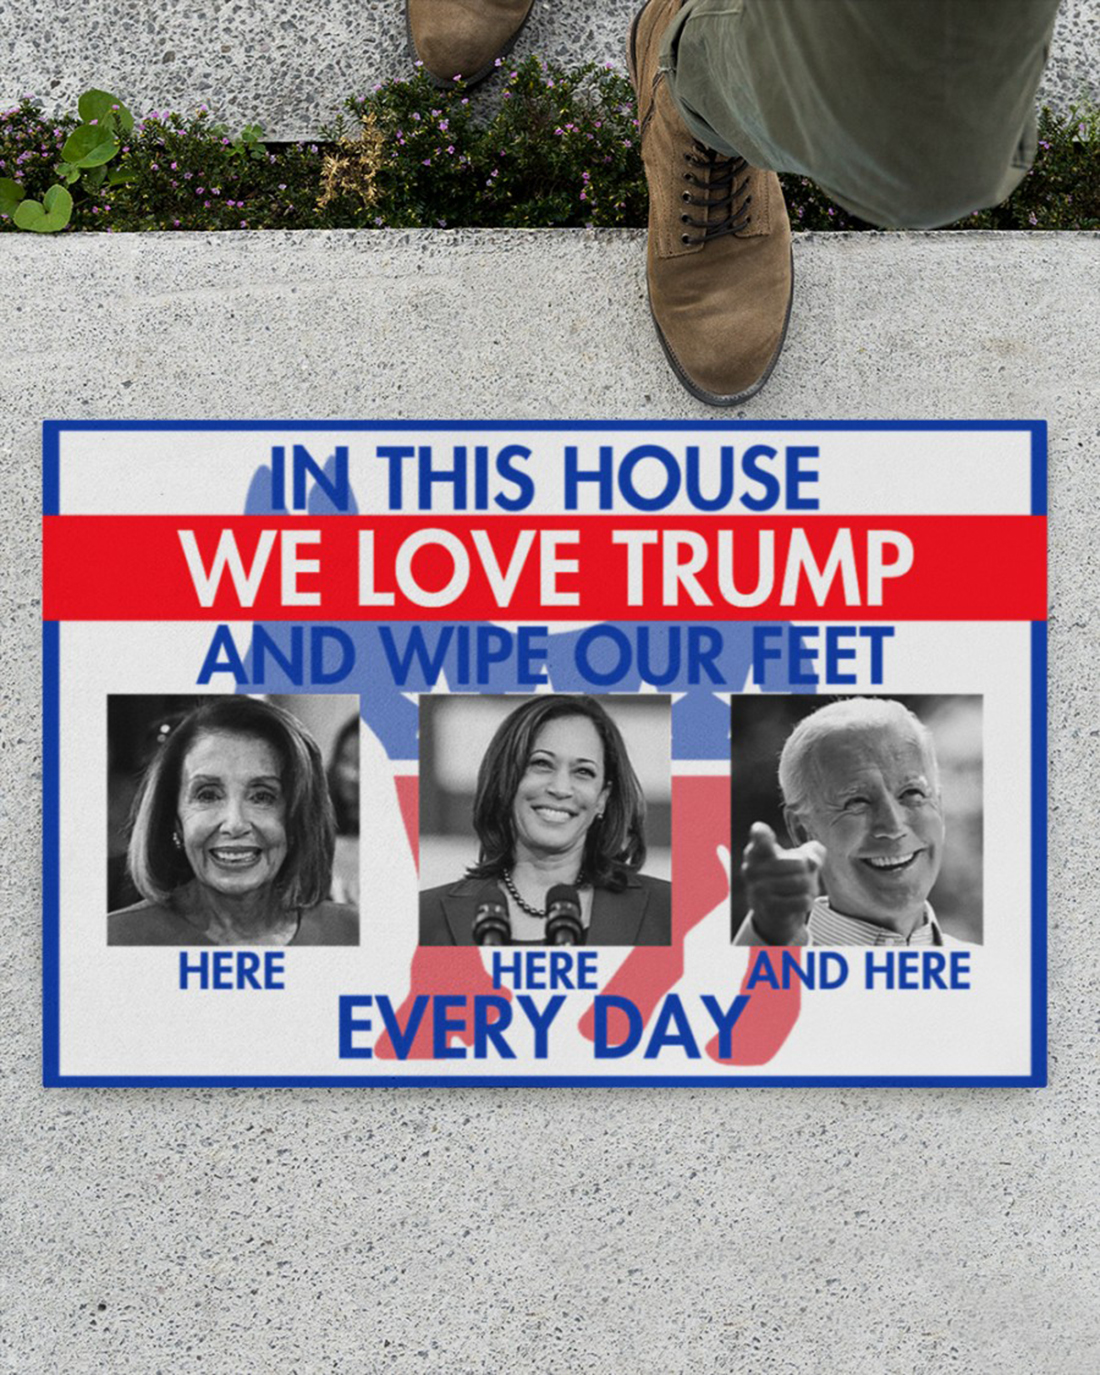 In this house we love Trump and wipe our feet here everyday doormat